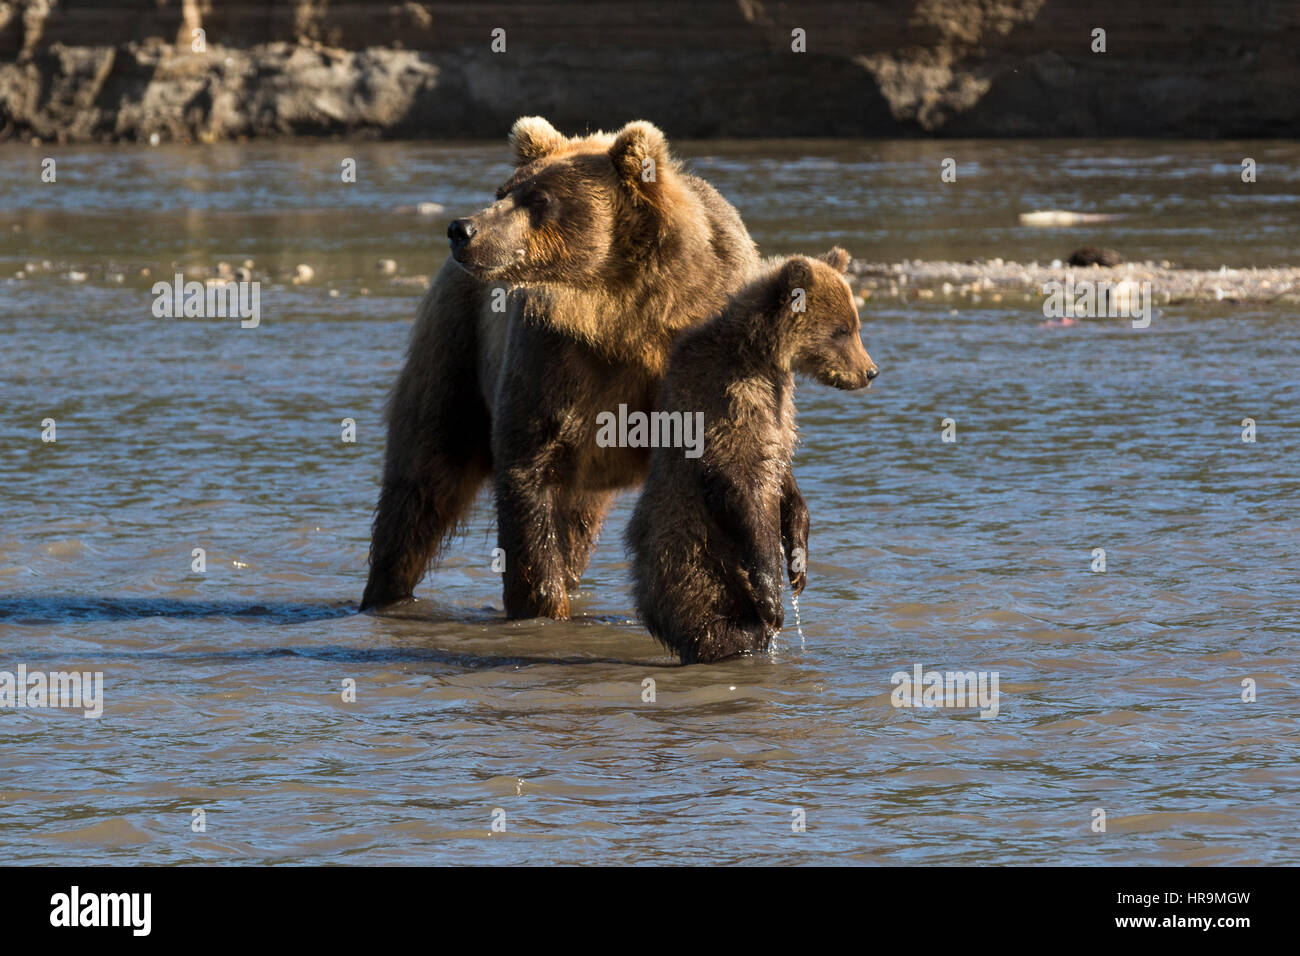 Mother bear and small cub fishing on river in wildlife - Stock Image